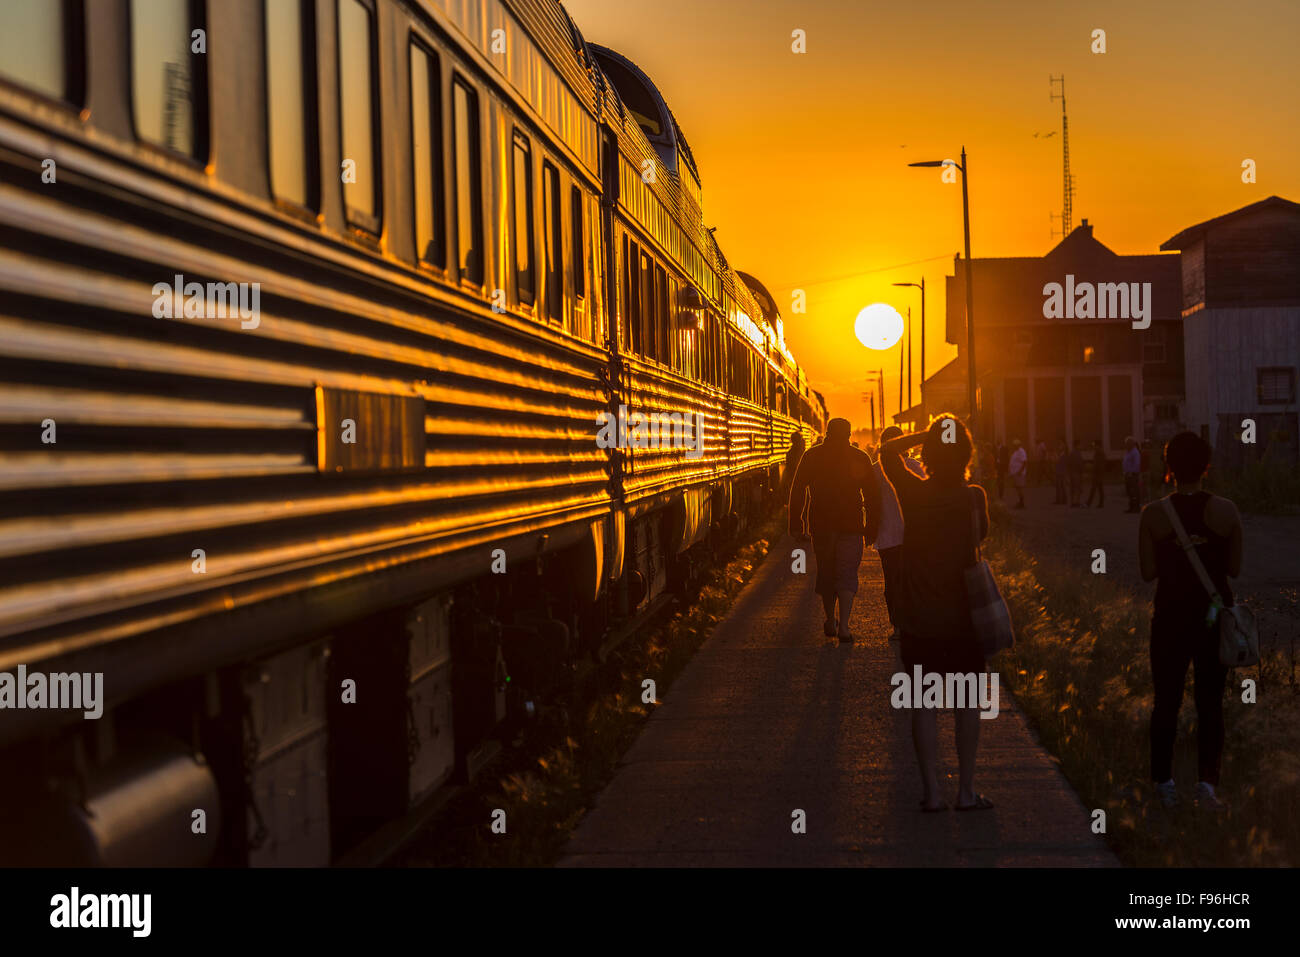 Sun setting in front of passenger train stopped in the town of Melville in Saskatchewan, Canada. - Stock Image